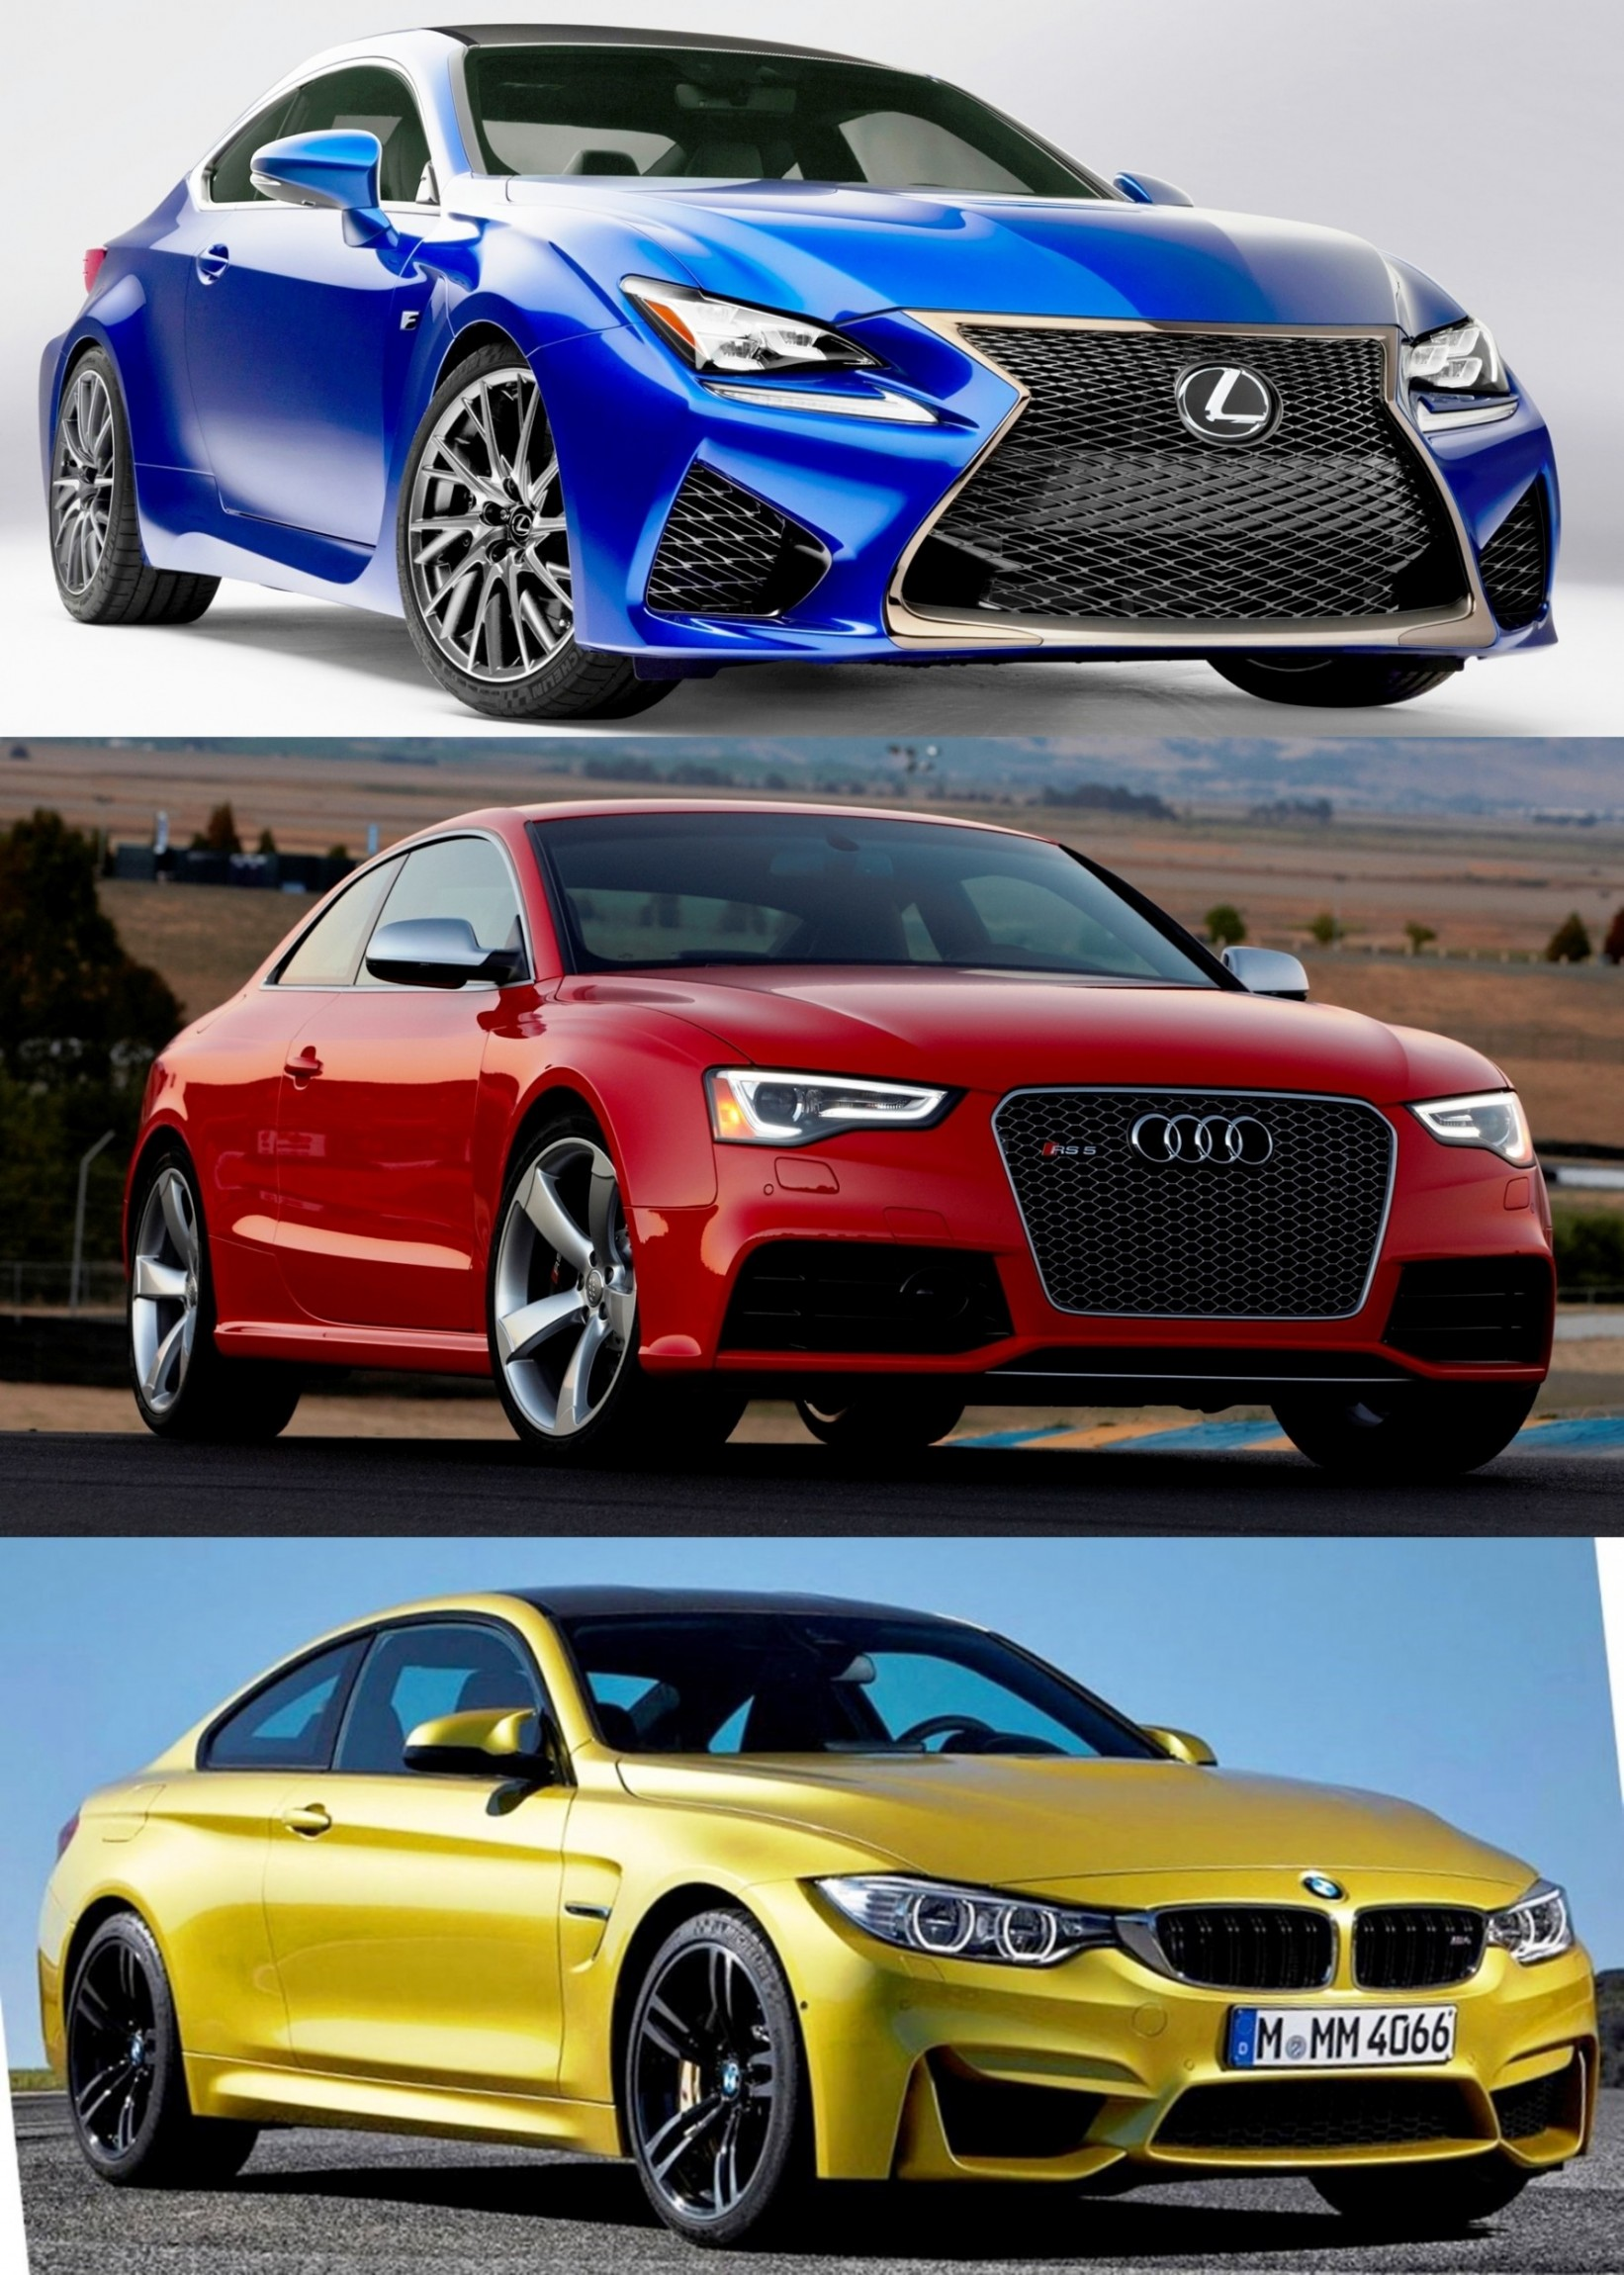 2015 Supercoupe Design Shootout - Lexus RC F vs. BMW M4 vs. Audi RS5 1